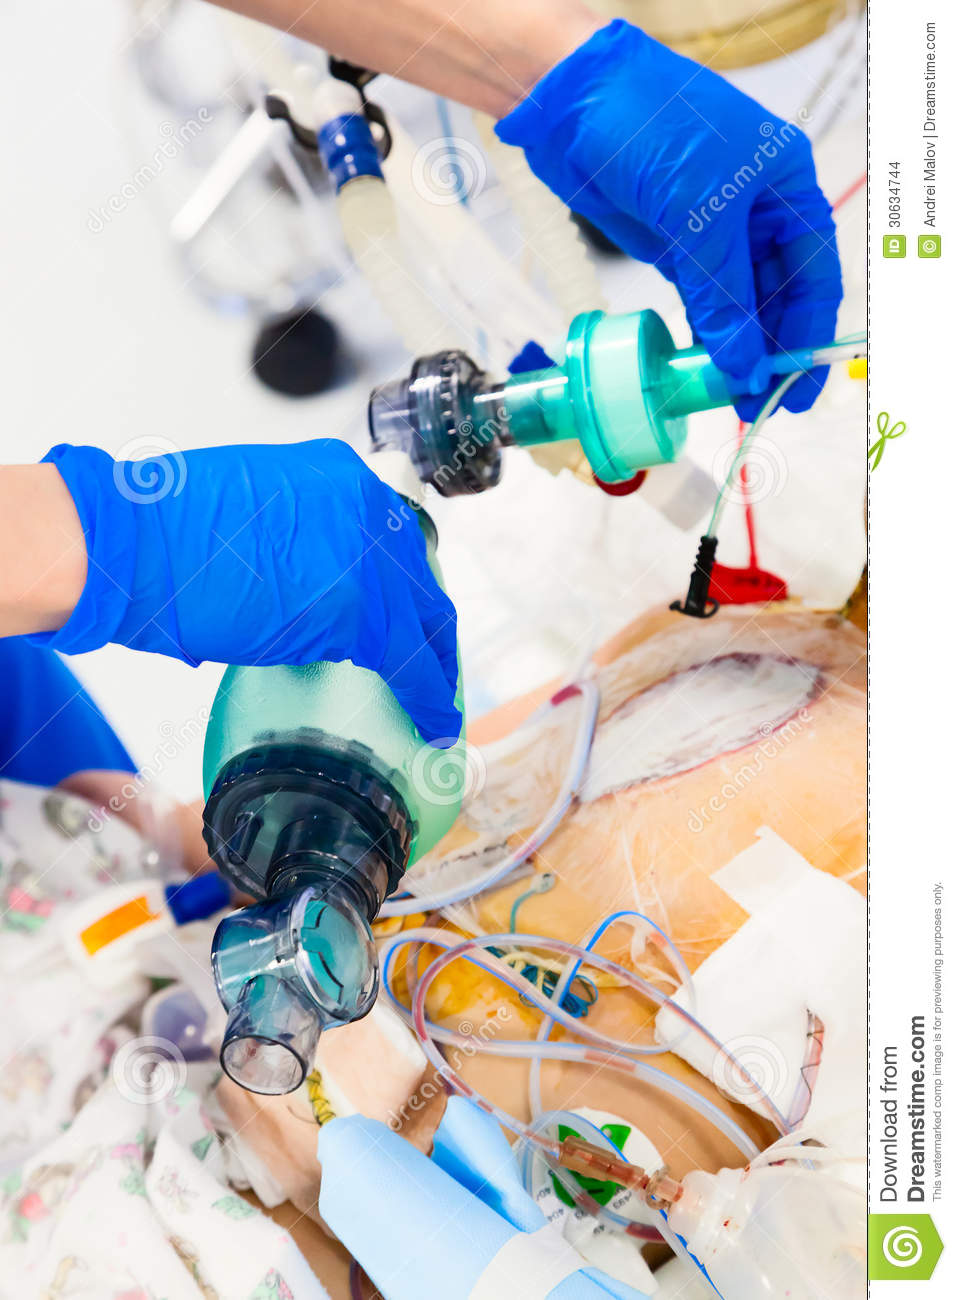 artificial ventilation with bag-valve-mask stock photo - image of